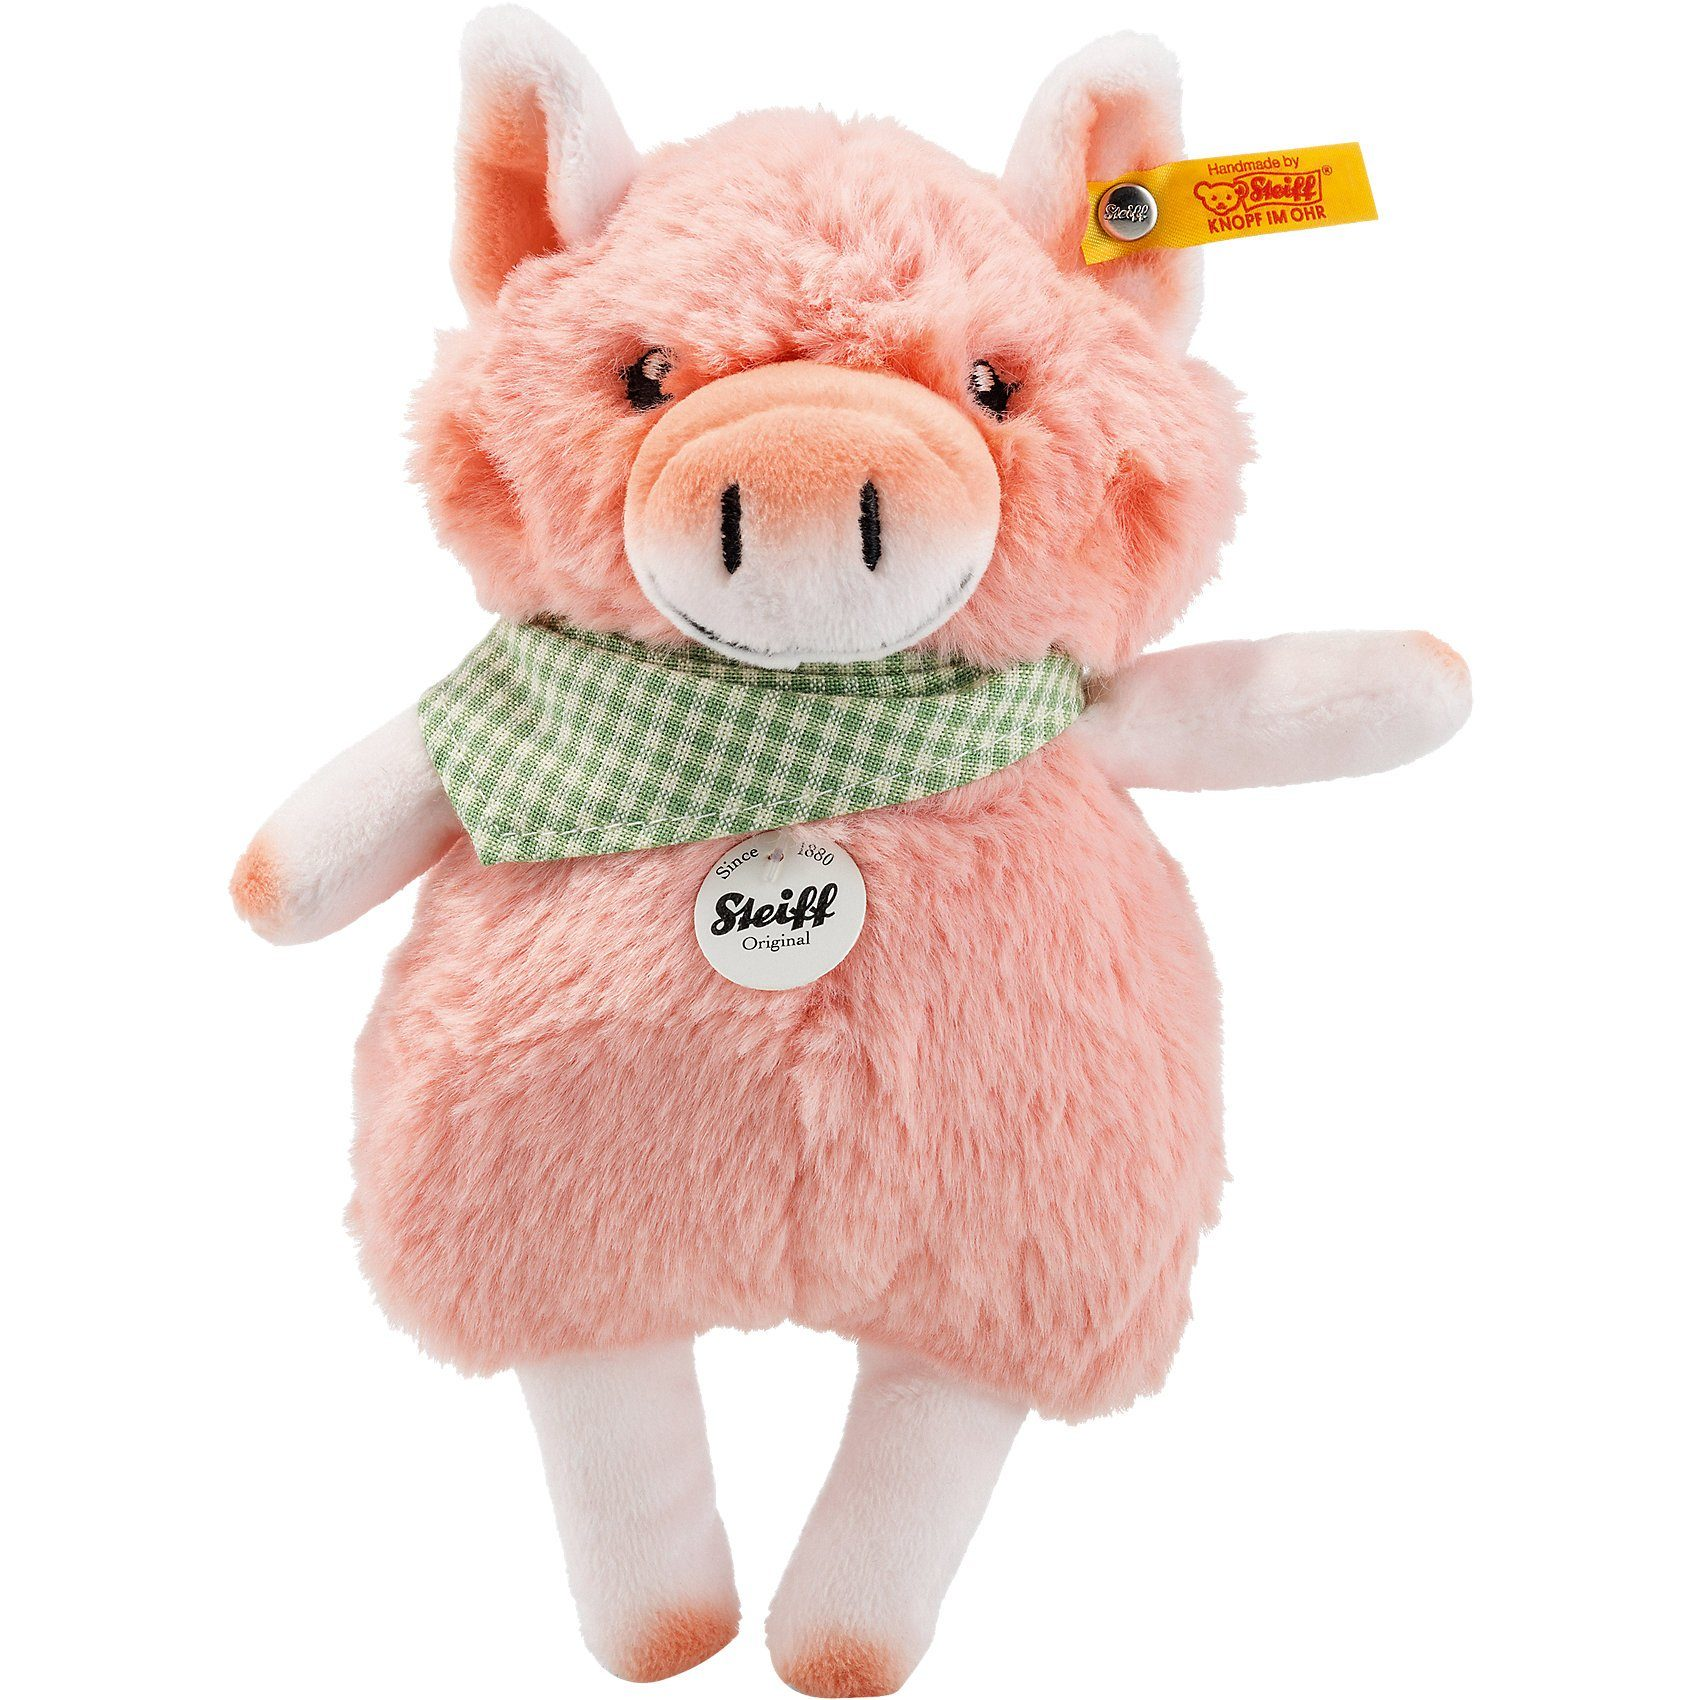 Steiff Happy Farm Schwein Mini Piggilee, 18 cm